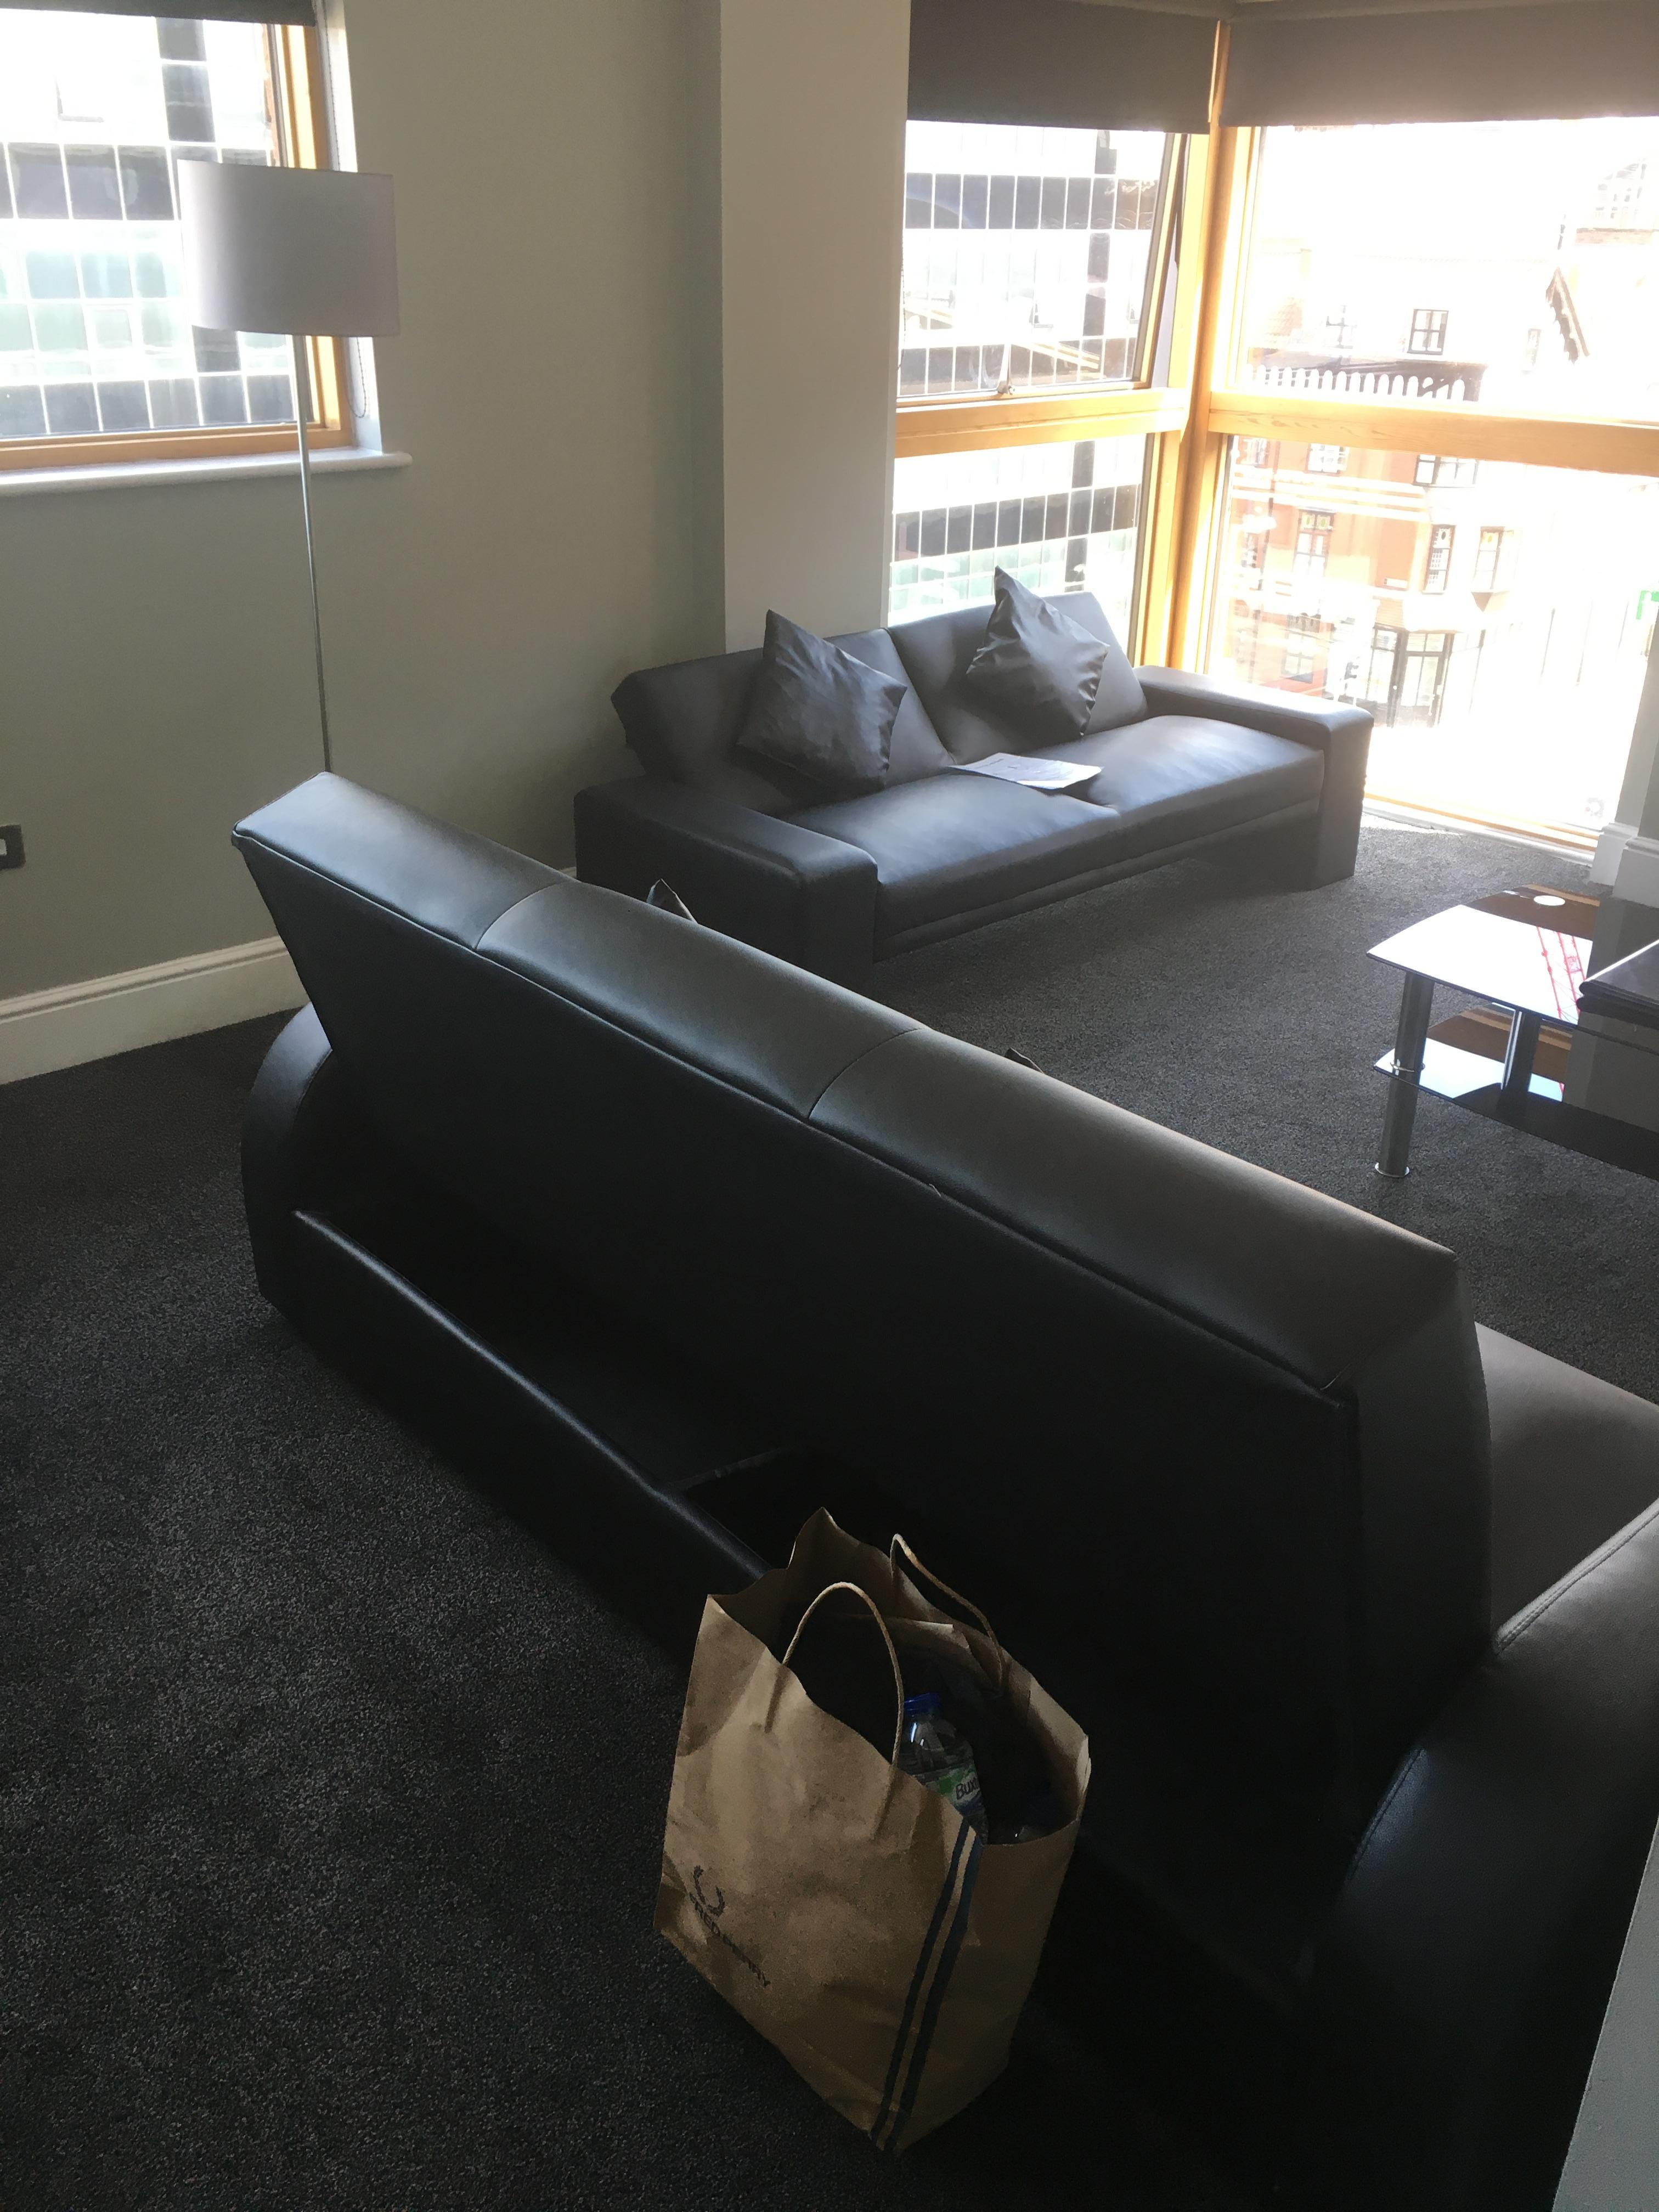 sofa warehouse manchester replacement cushions uk city aparthotel reviews photos rates for the price i paid this property is unbelievable a bedroom living area with 2 beds and fully fitted kitchen probably cheaper than standard